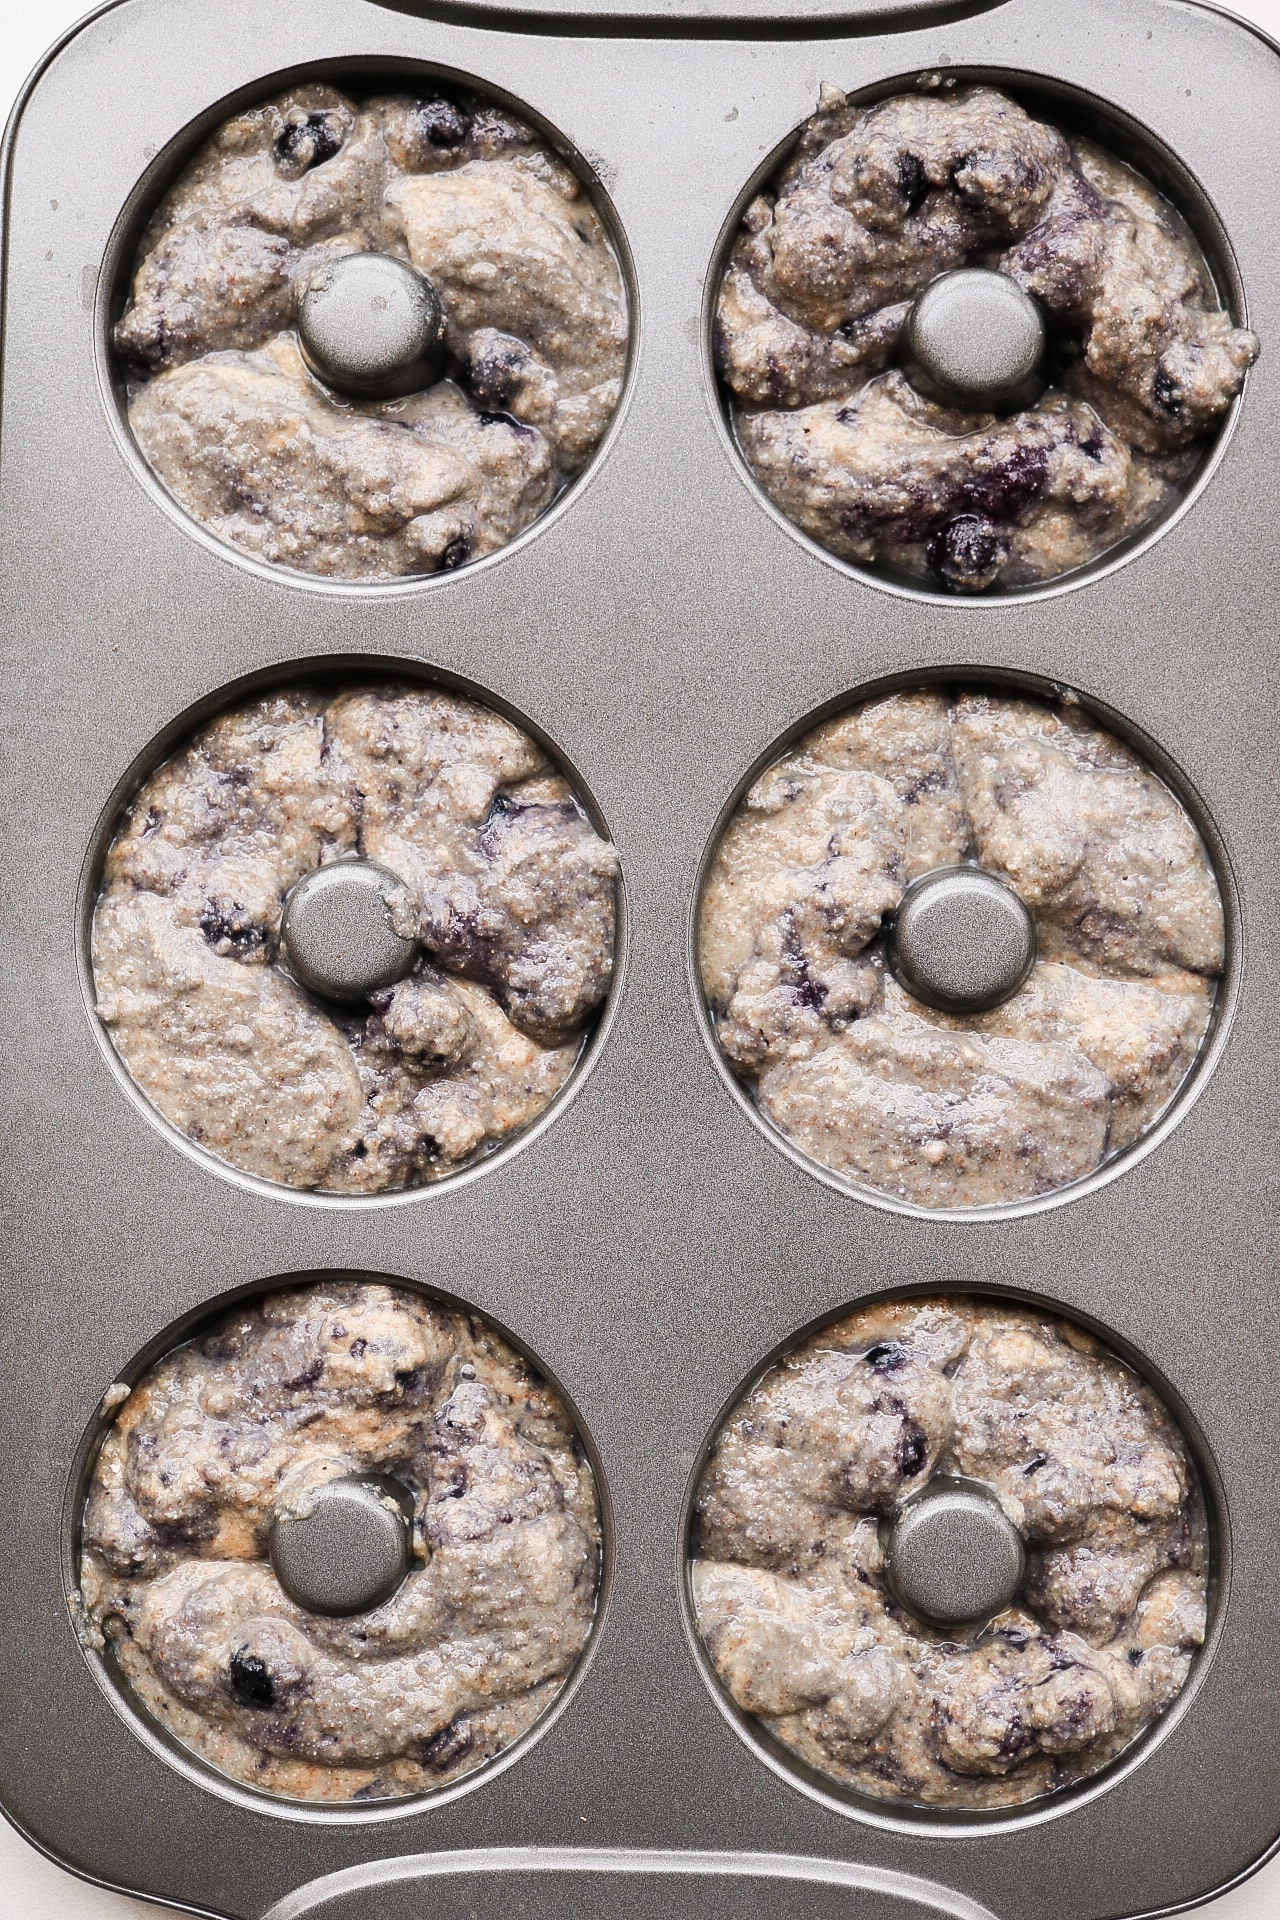 Fill up your donut pan and bake these bad boys for about 20 minutes!